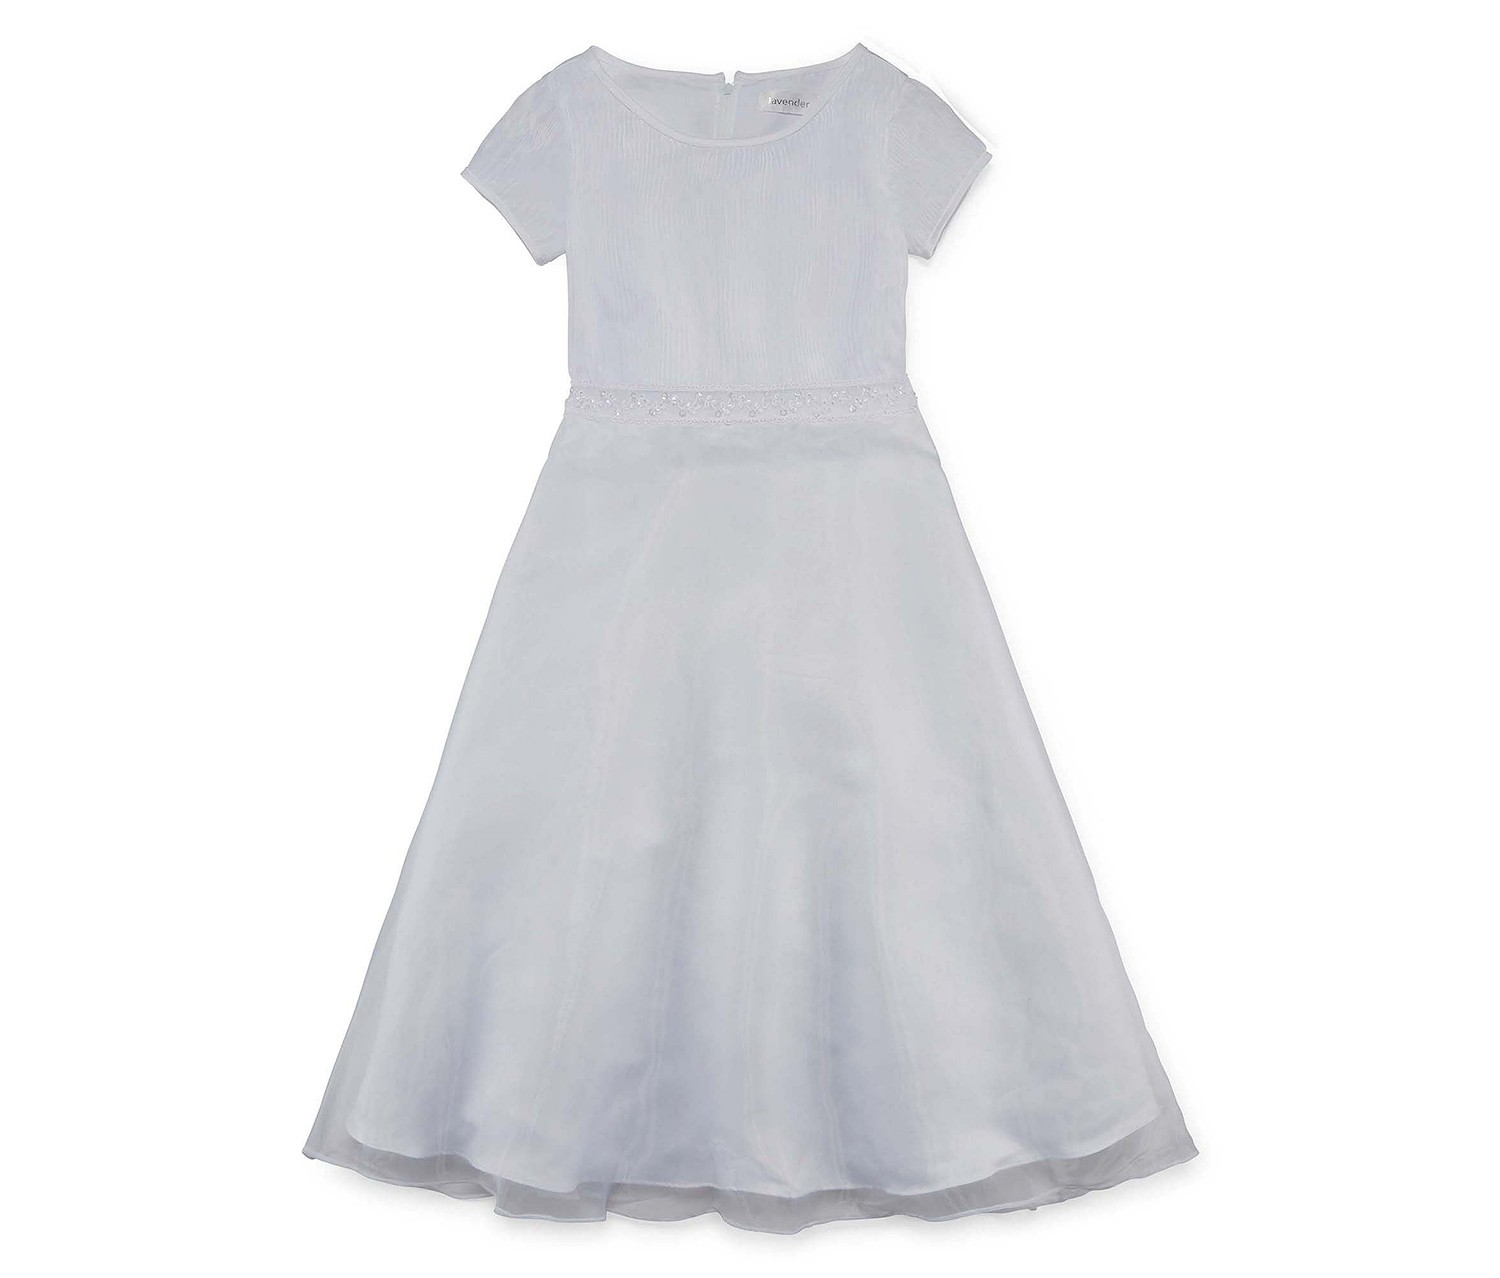 Lavender By Us Angels Communion Dress Short Sleeve Party Dress, White